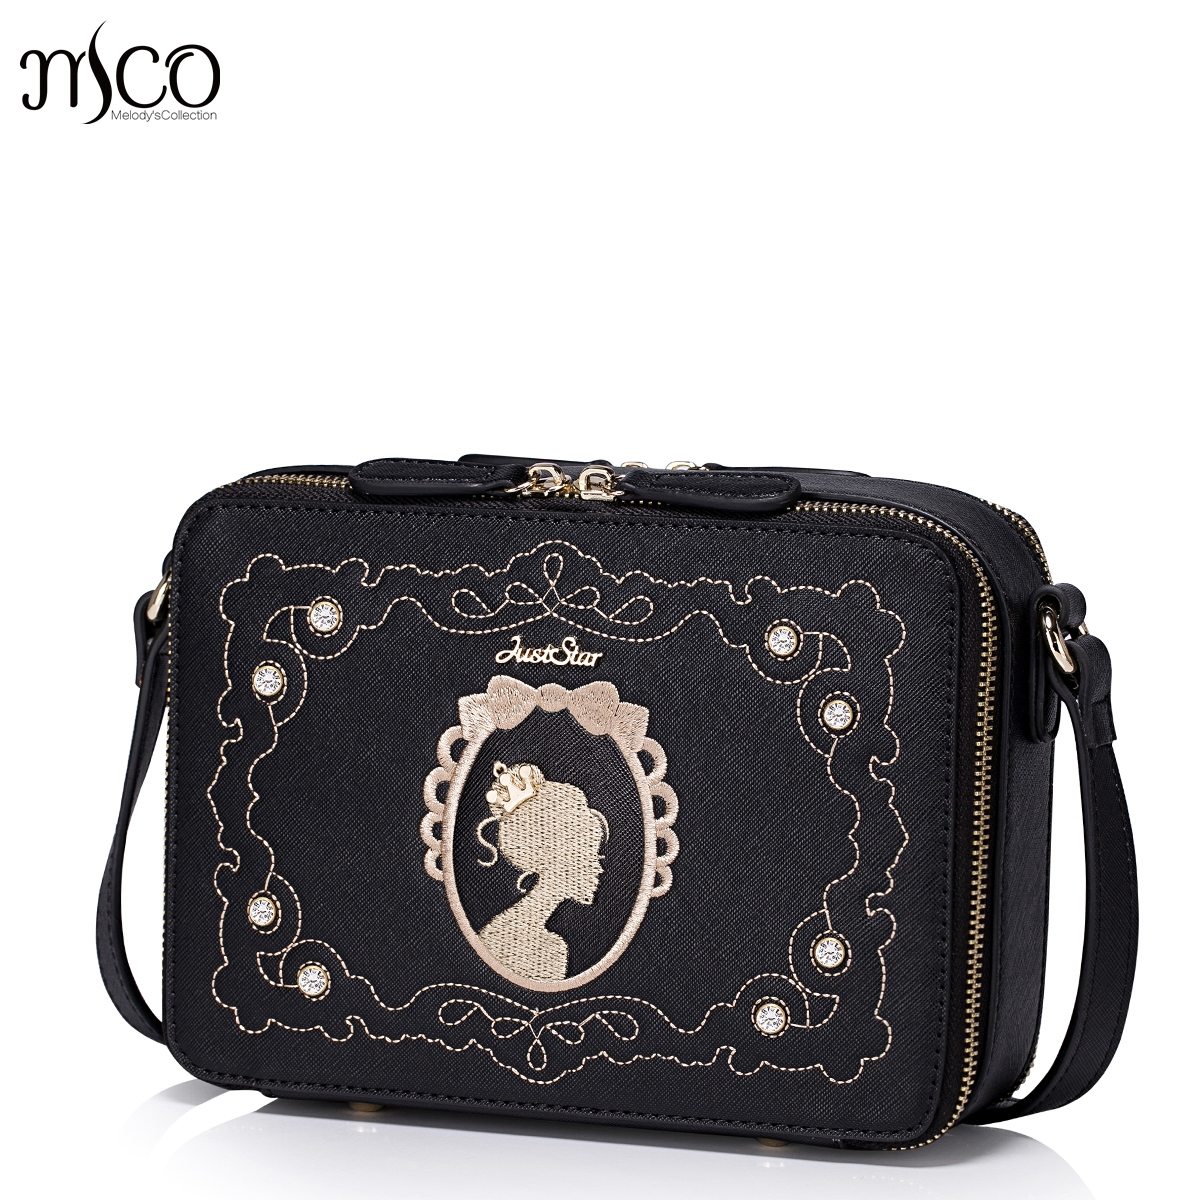 Magic Mirror Brand Fashion Vintage Diamonds Princess Women Handbag Shoulder Bag Small Messenger Bag Girls ladies Gifts bolsos